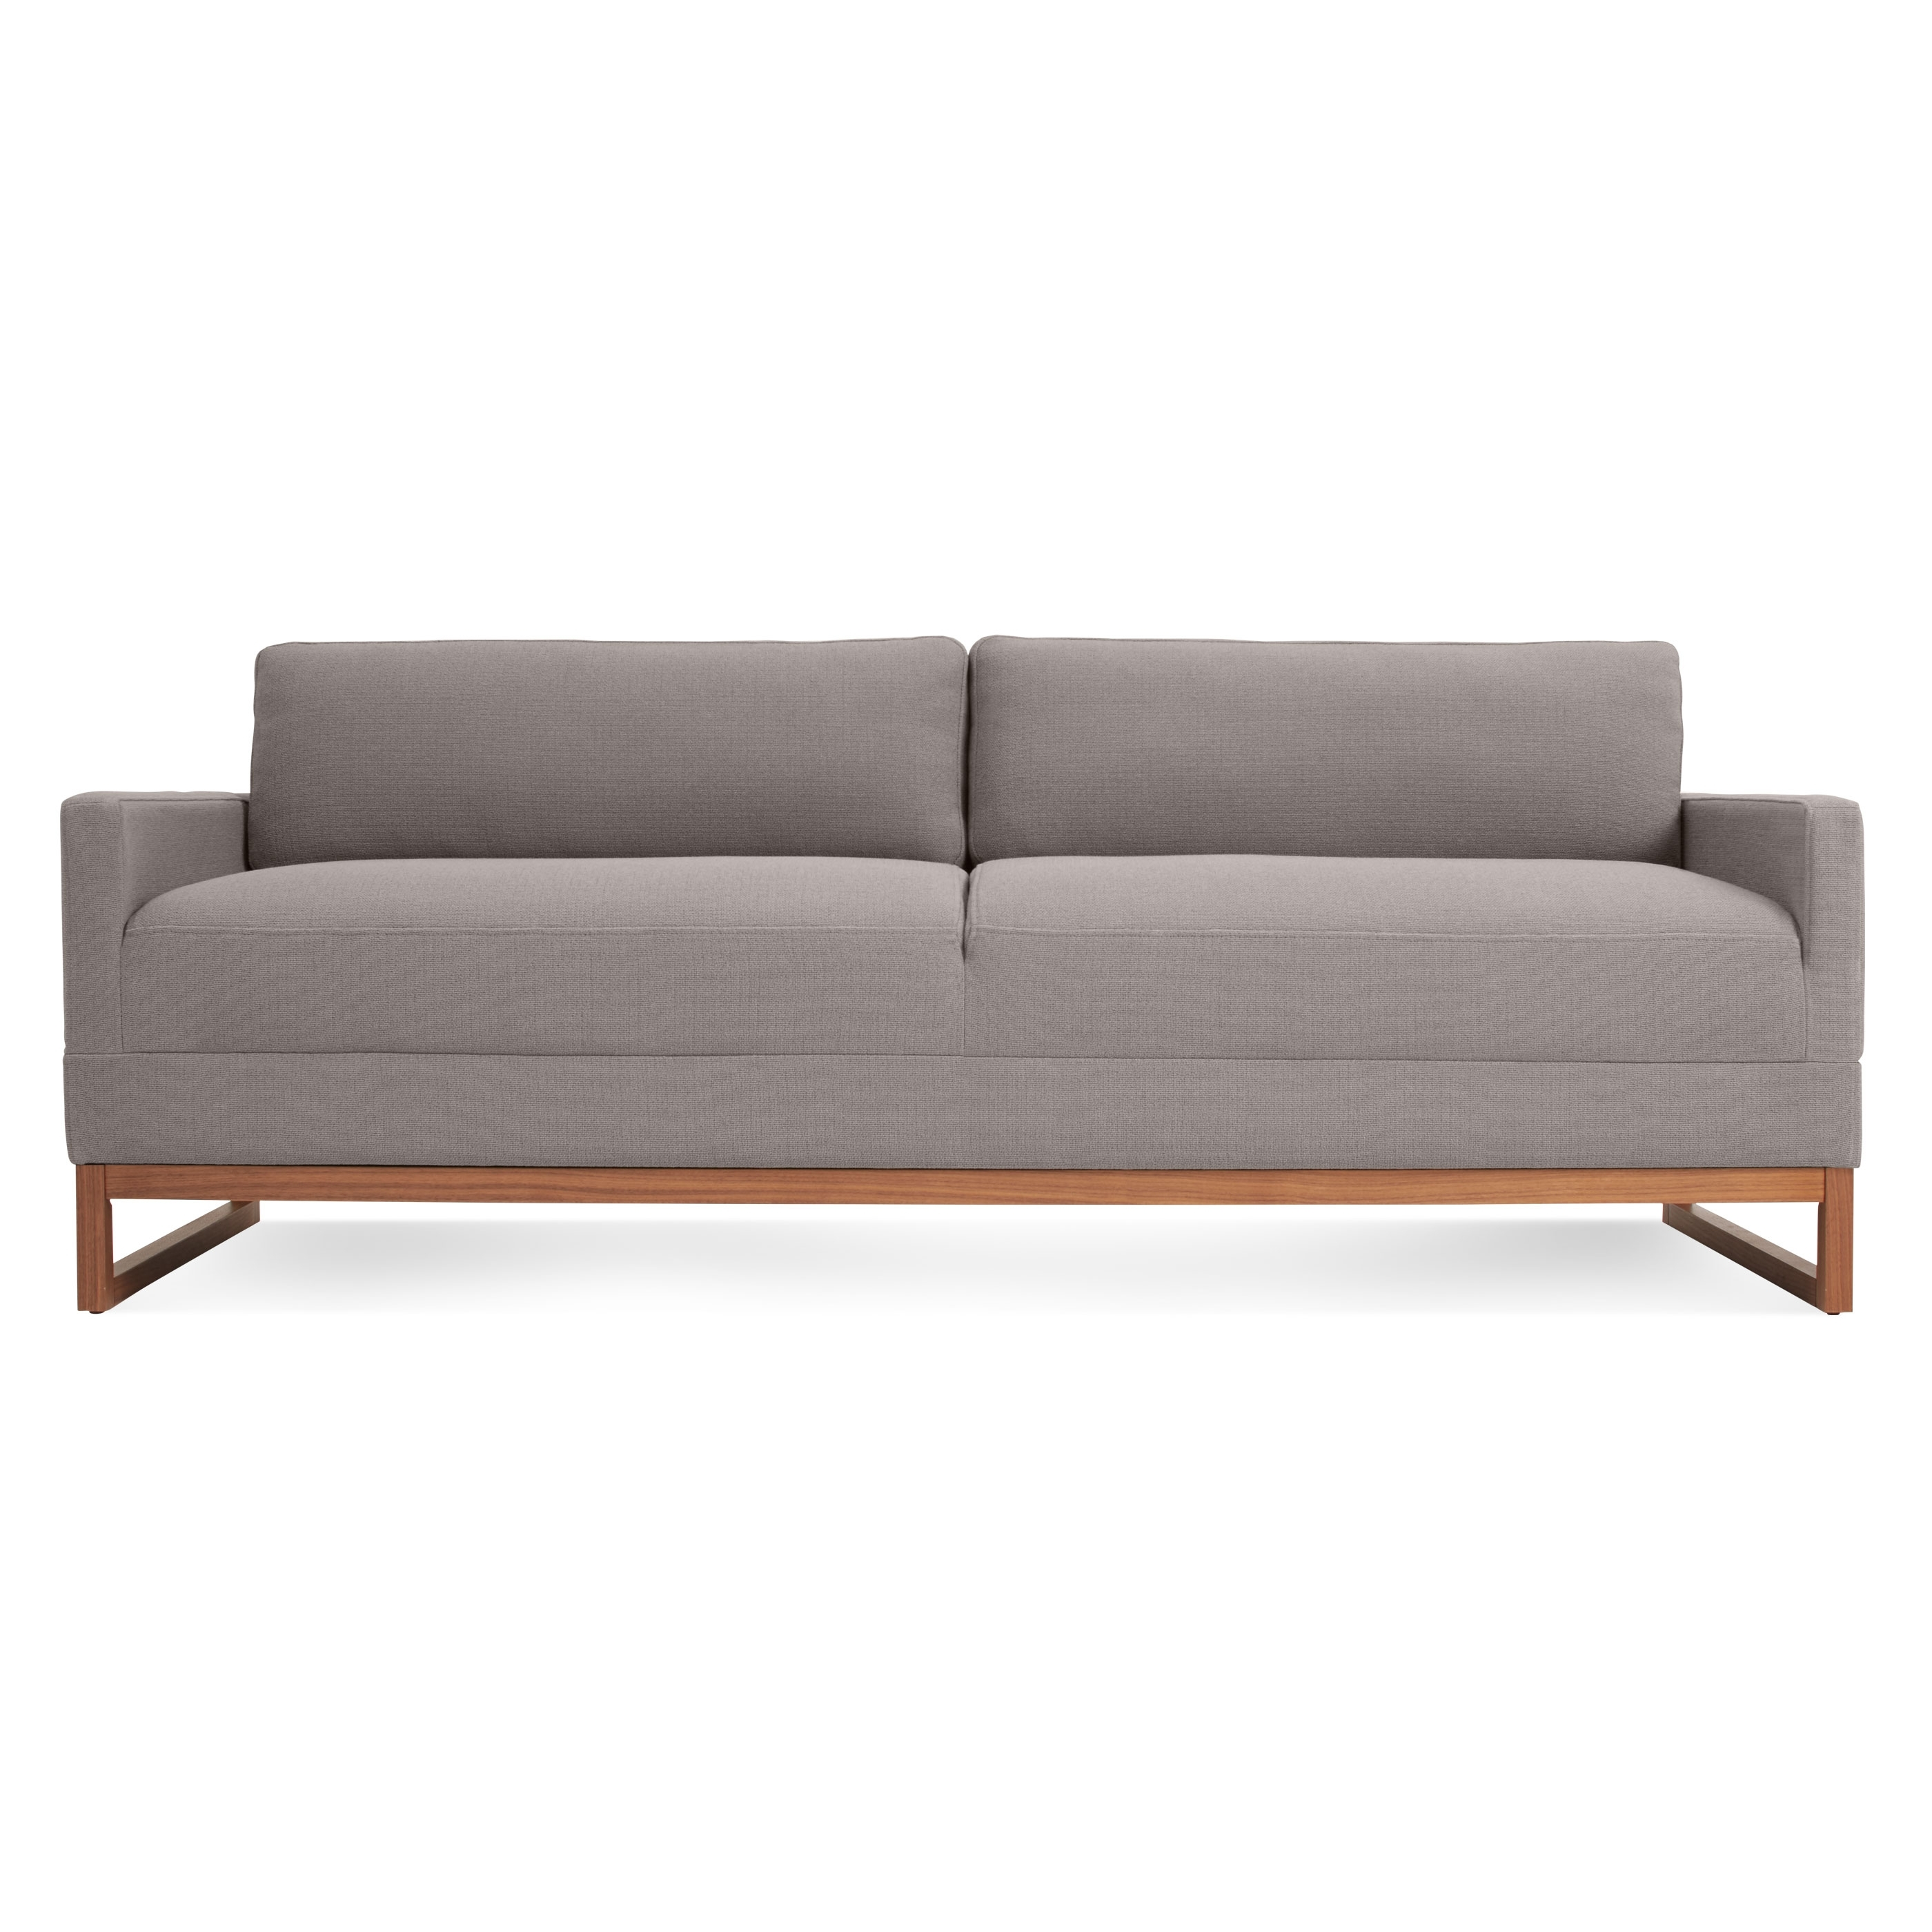 Sleeper Sofa – Diplomat Convertible Sofa | Blu Dot With Regard To Convertible Sofas (Image 8 of 10)